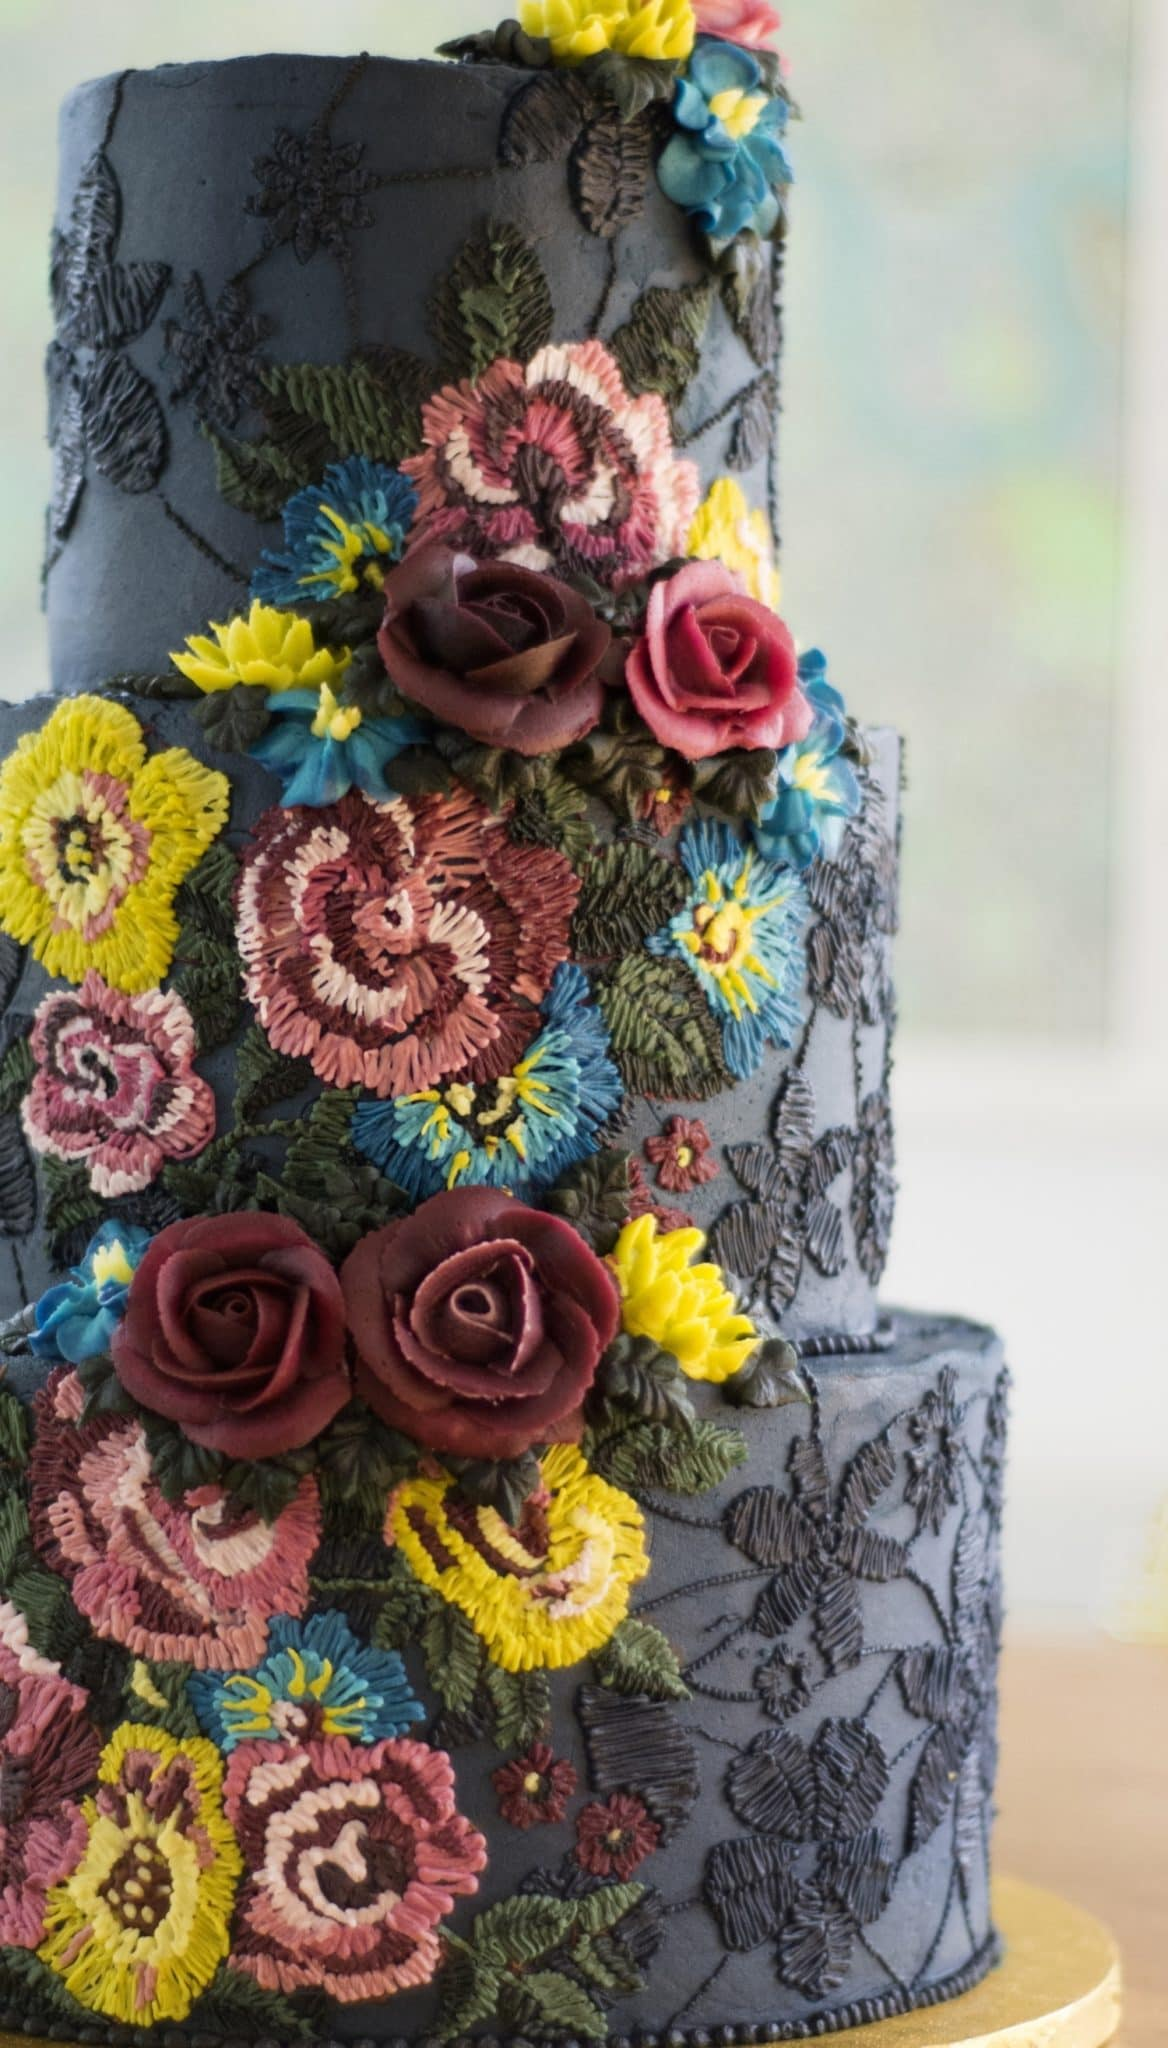 Three tiered buttercream cake from Emma Page with embroidery style texture and piped buttercream roses